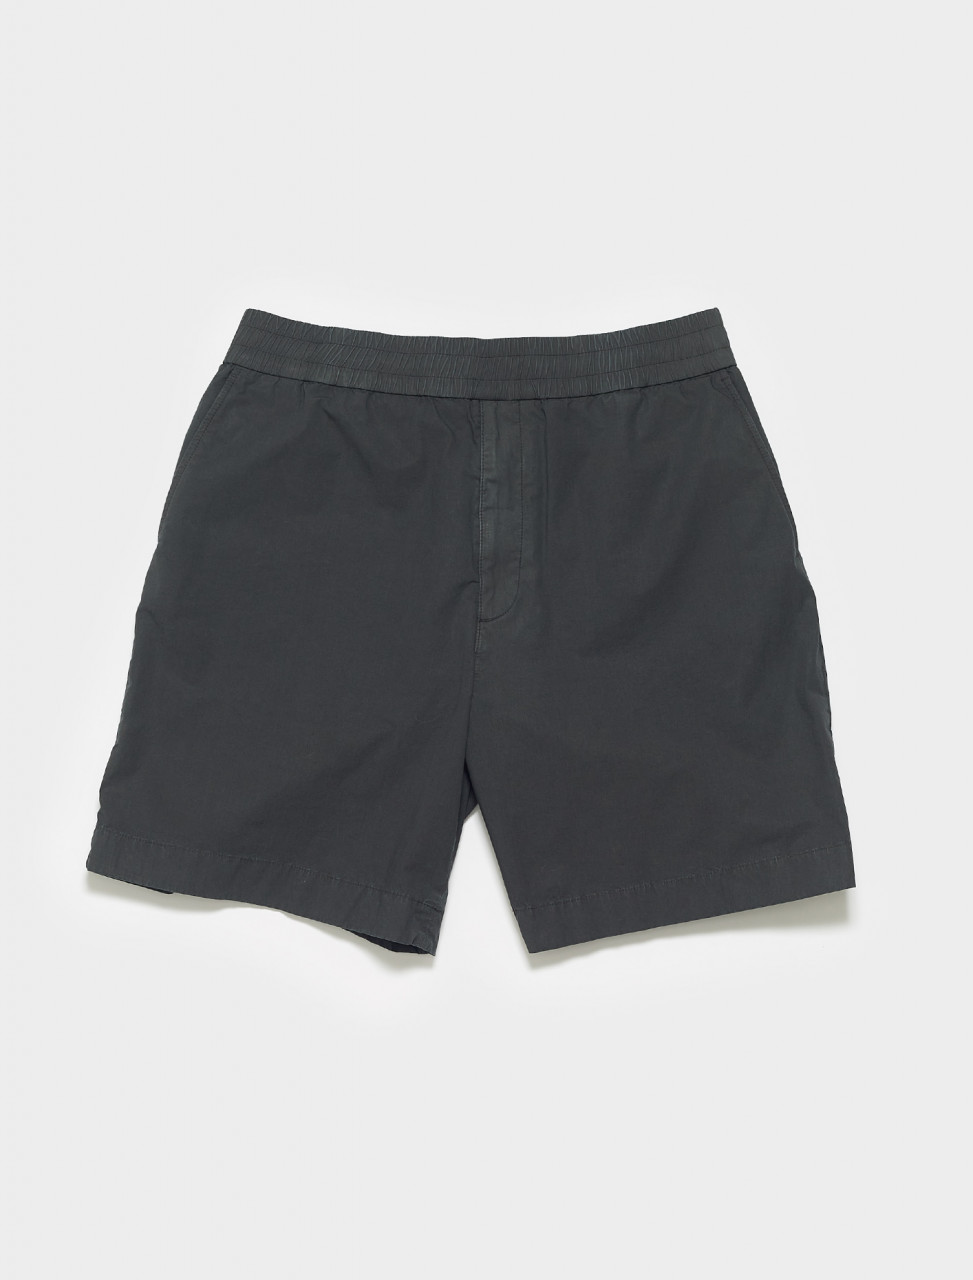 BE0058-AA2 ACNE STUDIOS RANDAL GD WASHED SHORTS IN ANTHRACITE GREY